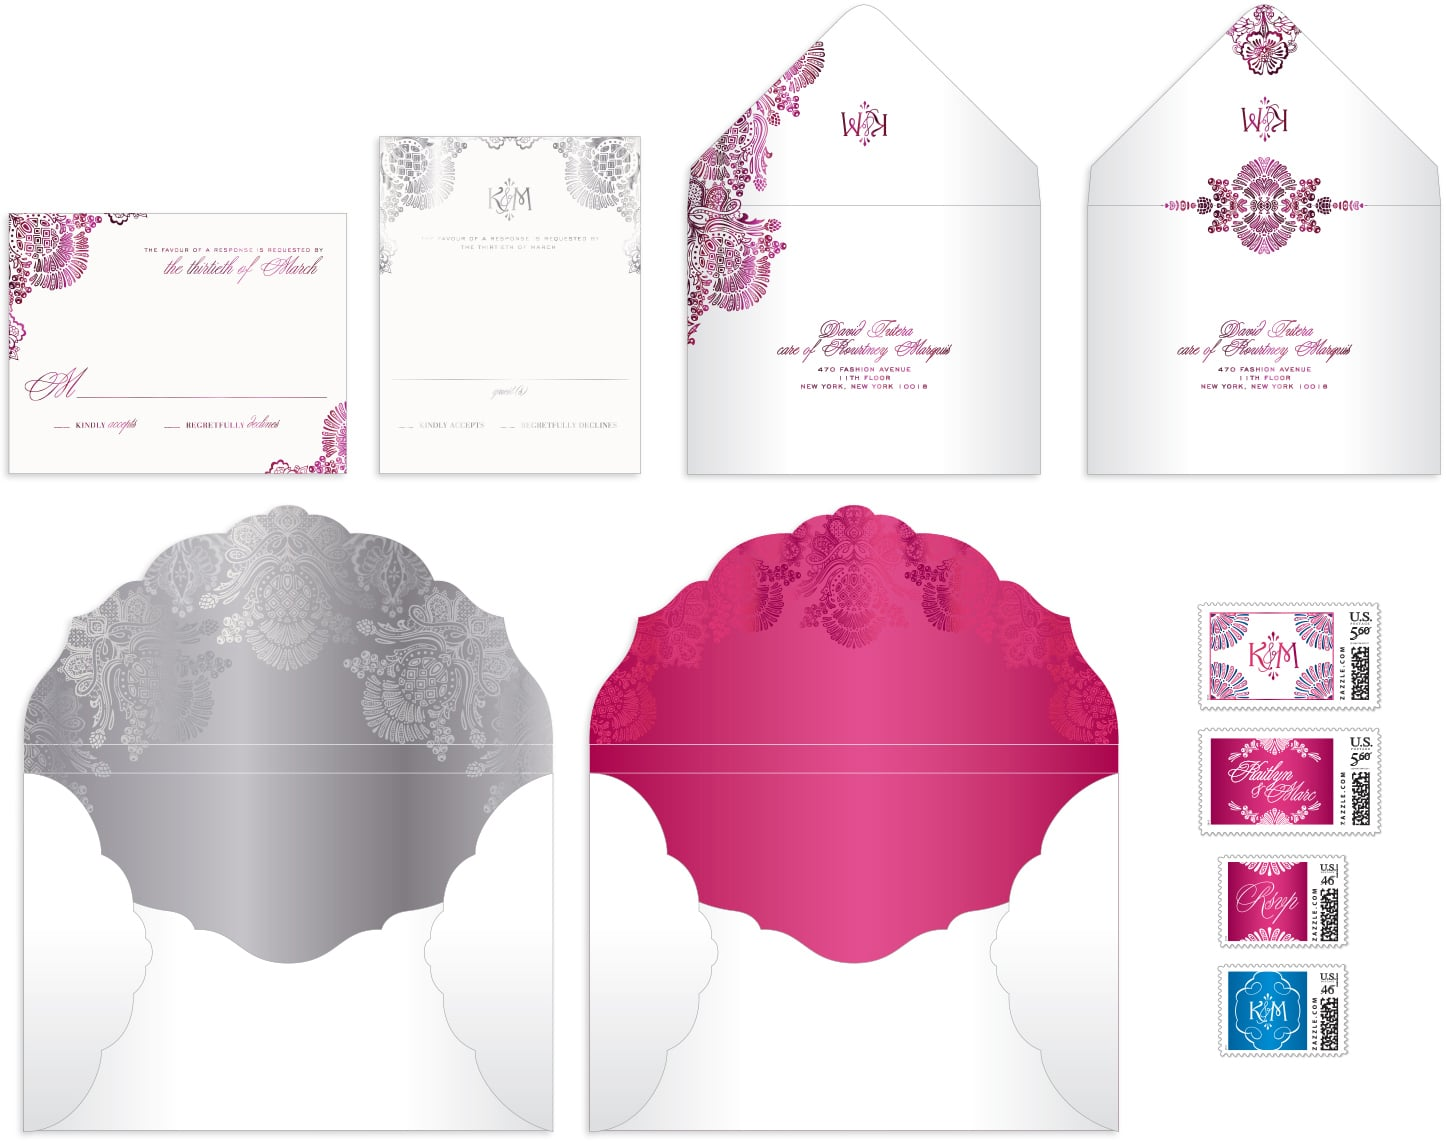 Pink and silver envelope designs